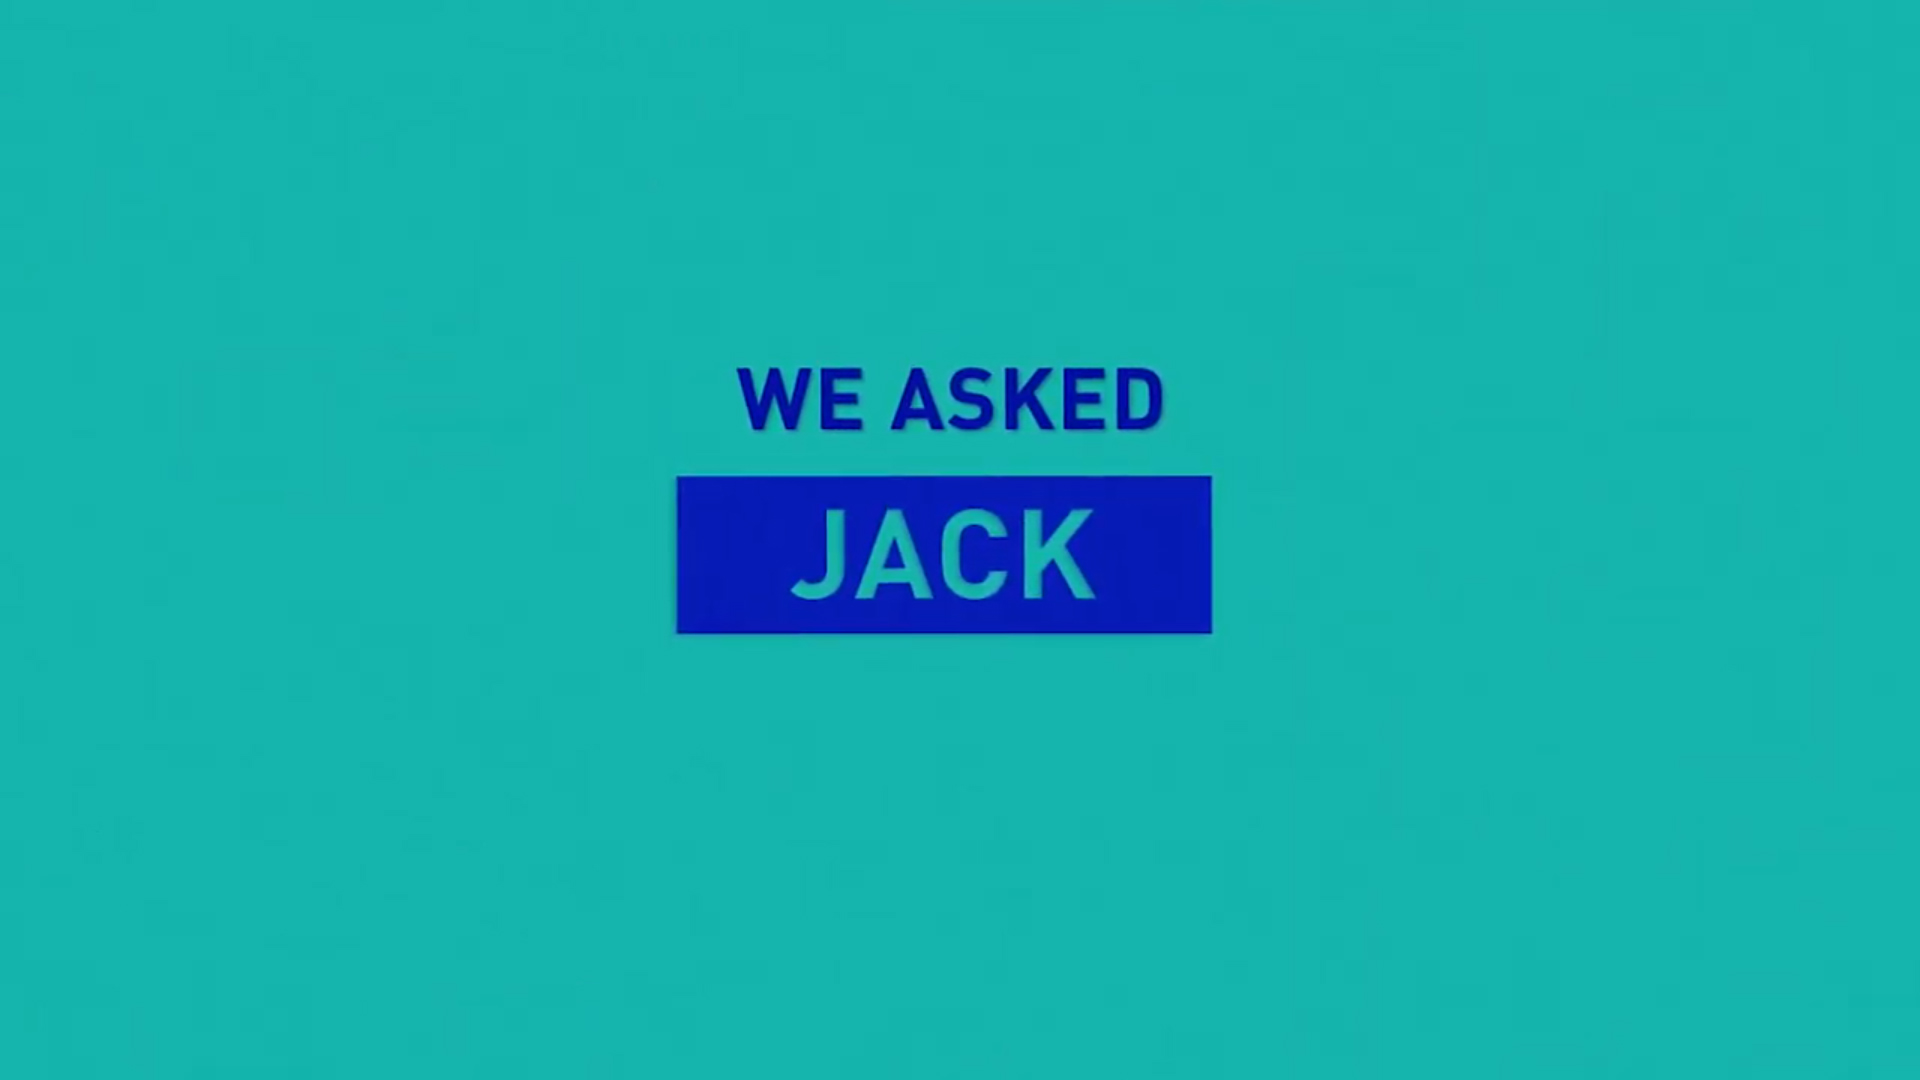 we asked jack splash image